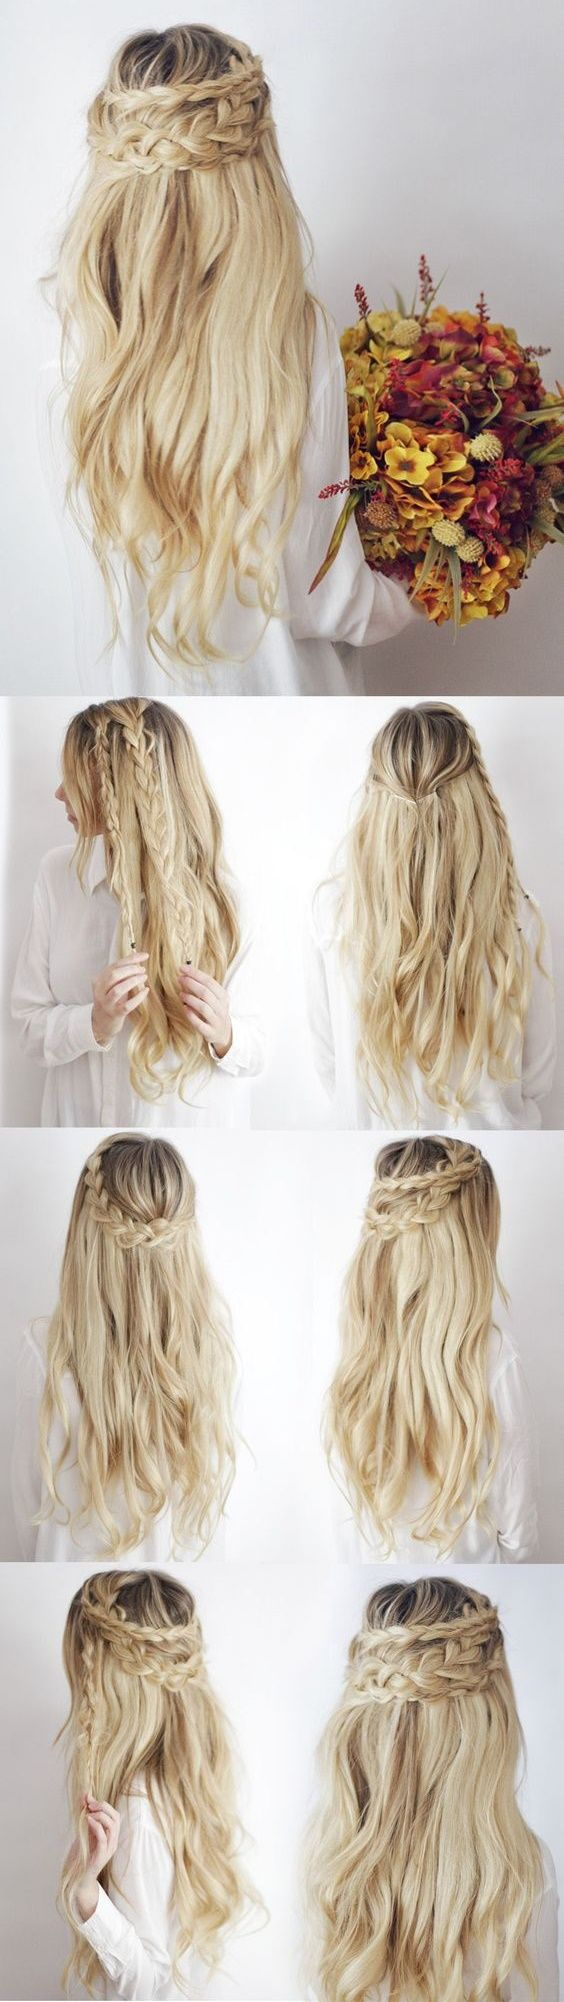 34 best Twirp 16 images on Pinterest | Cute hairstyles, Wedding hair ...